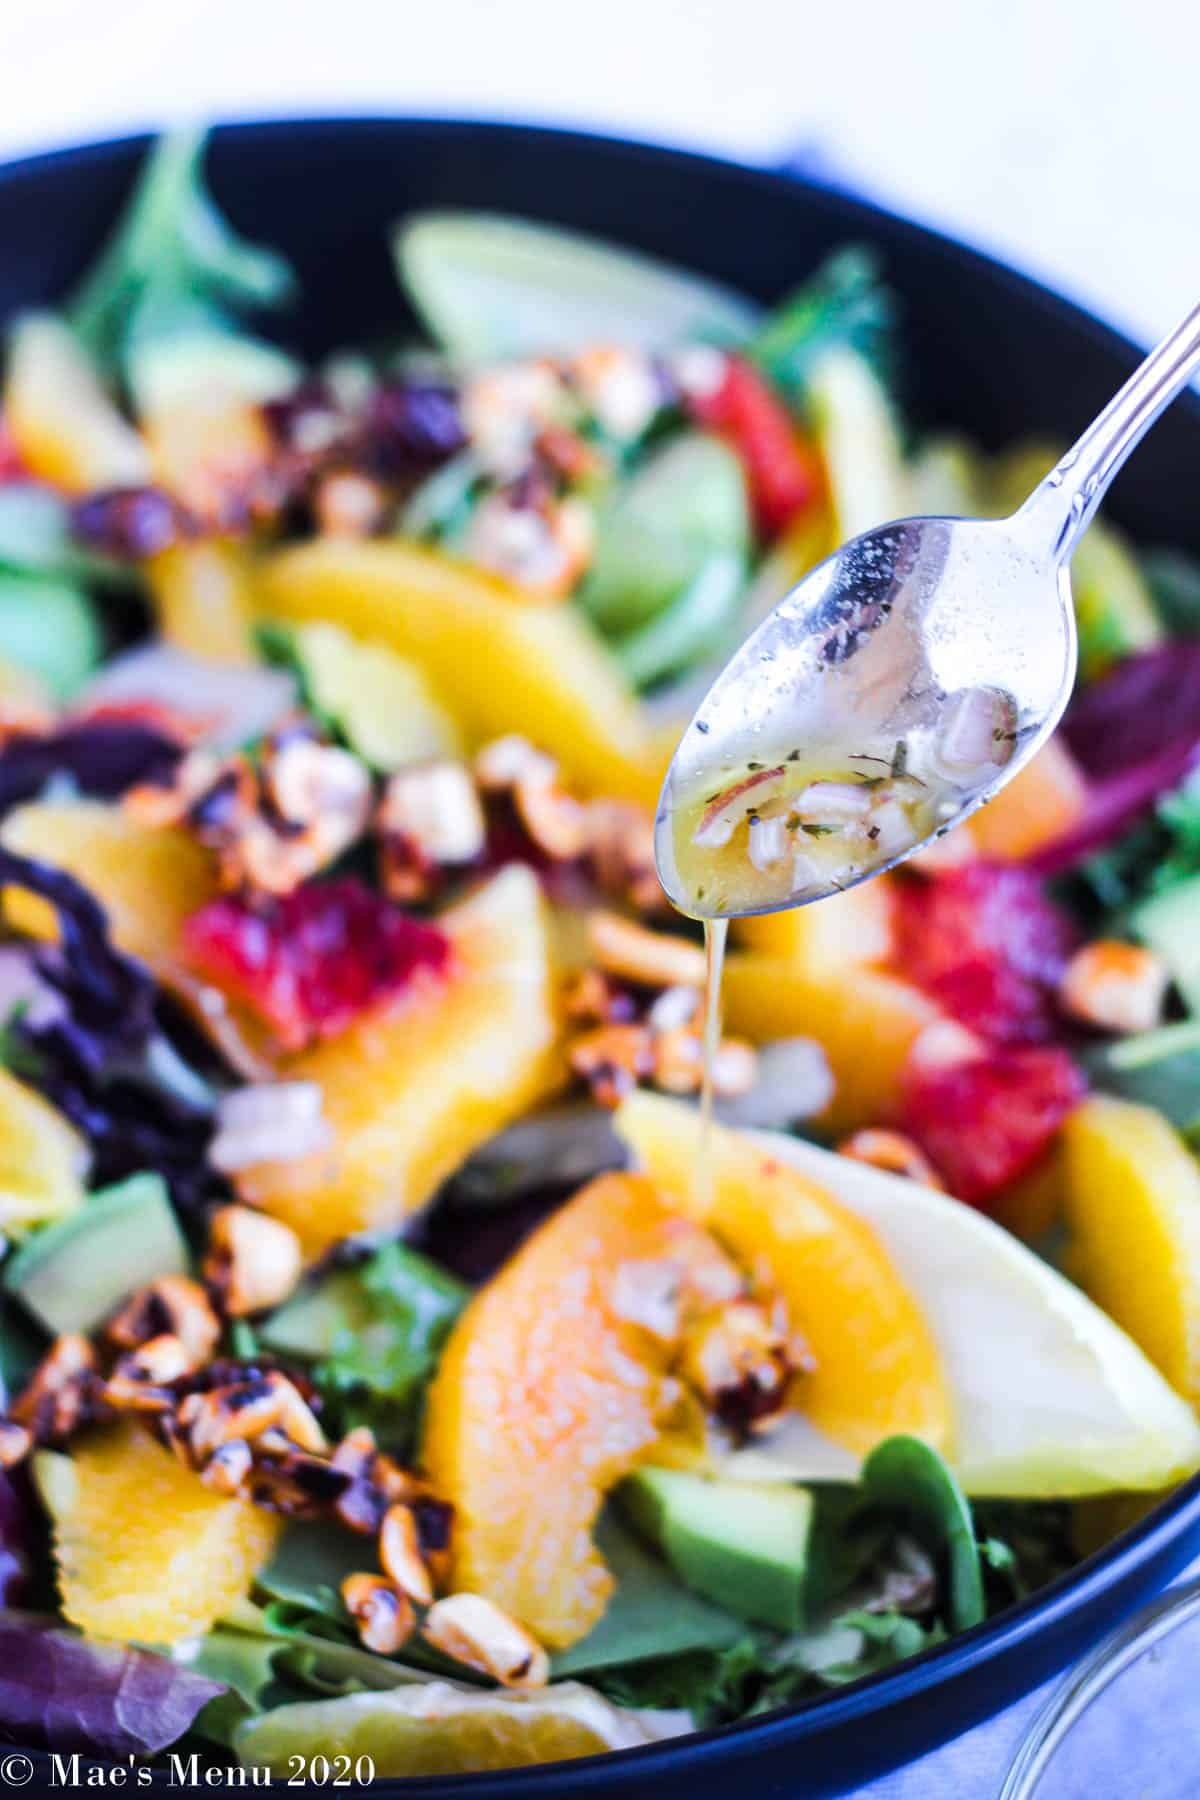 A small spoon drizzling dressing over the orange salad